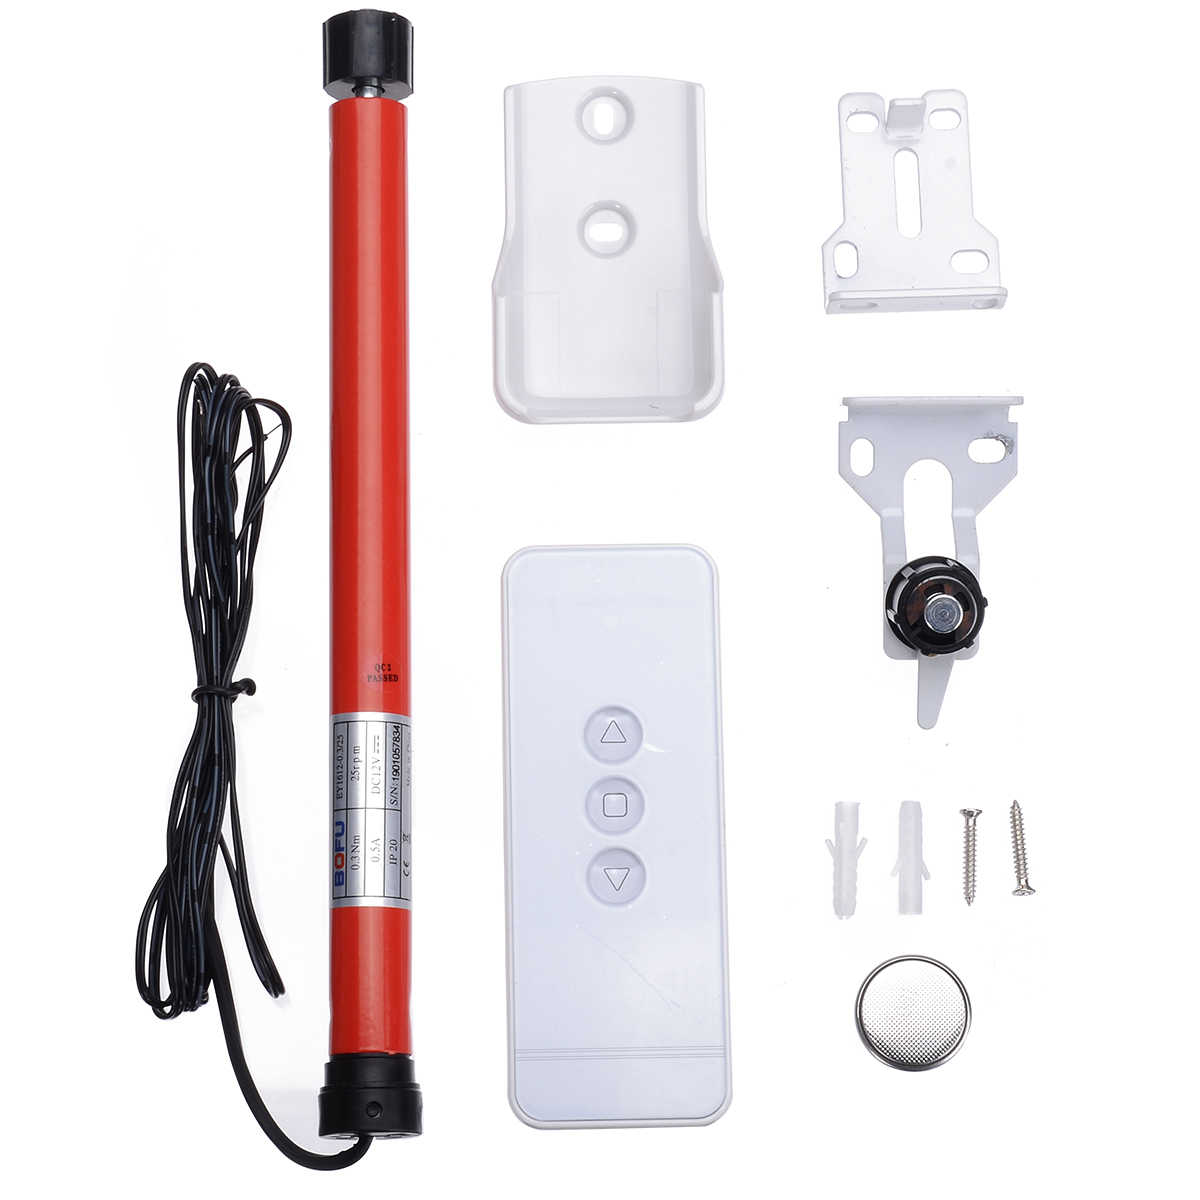 12V Electric Roller Blind DIY Roll-up Window Shade Tubular Tool with Remote Control for Home Decor Roller Shade Mayitr